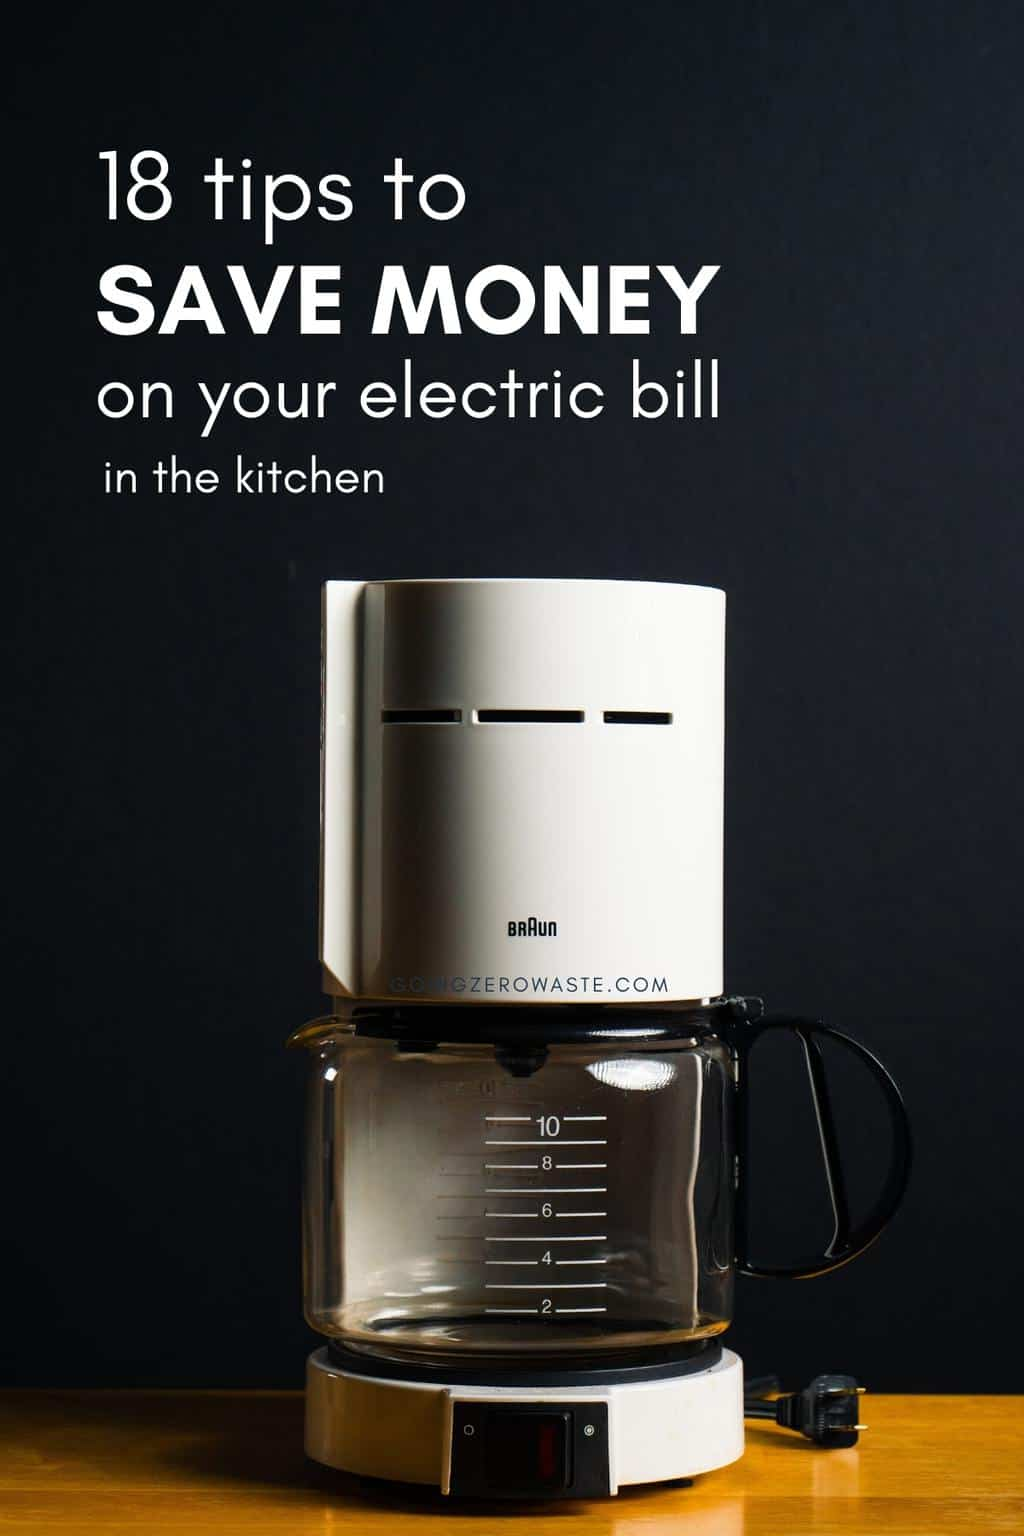 18 ways to save money on your electric bill in the kitchen